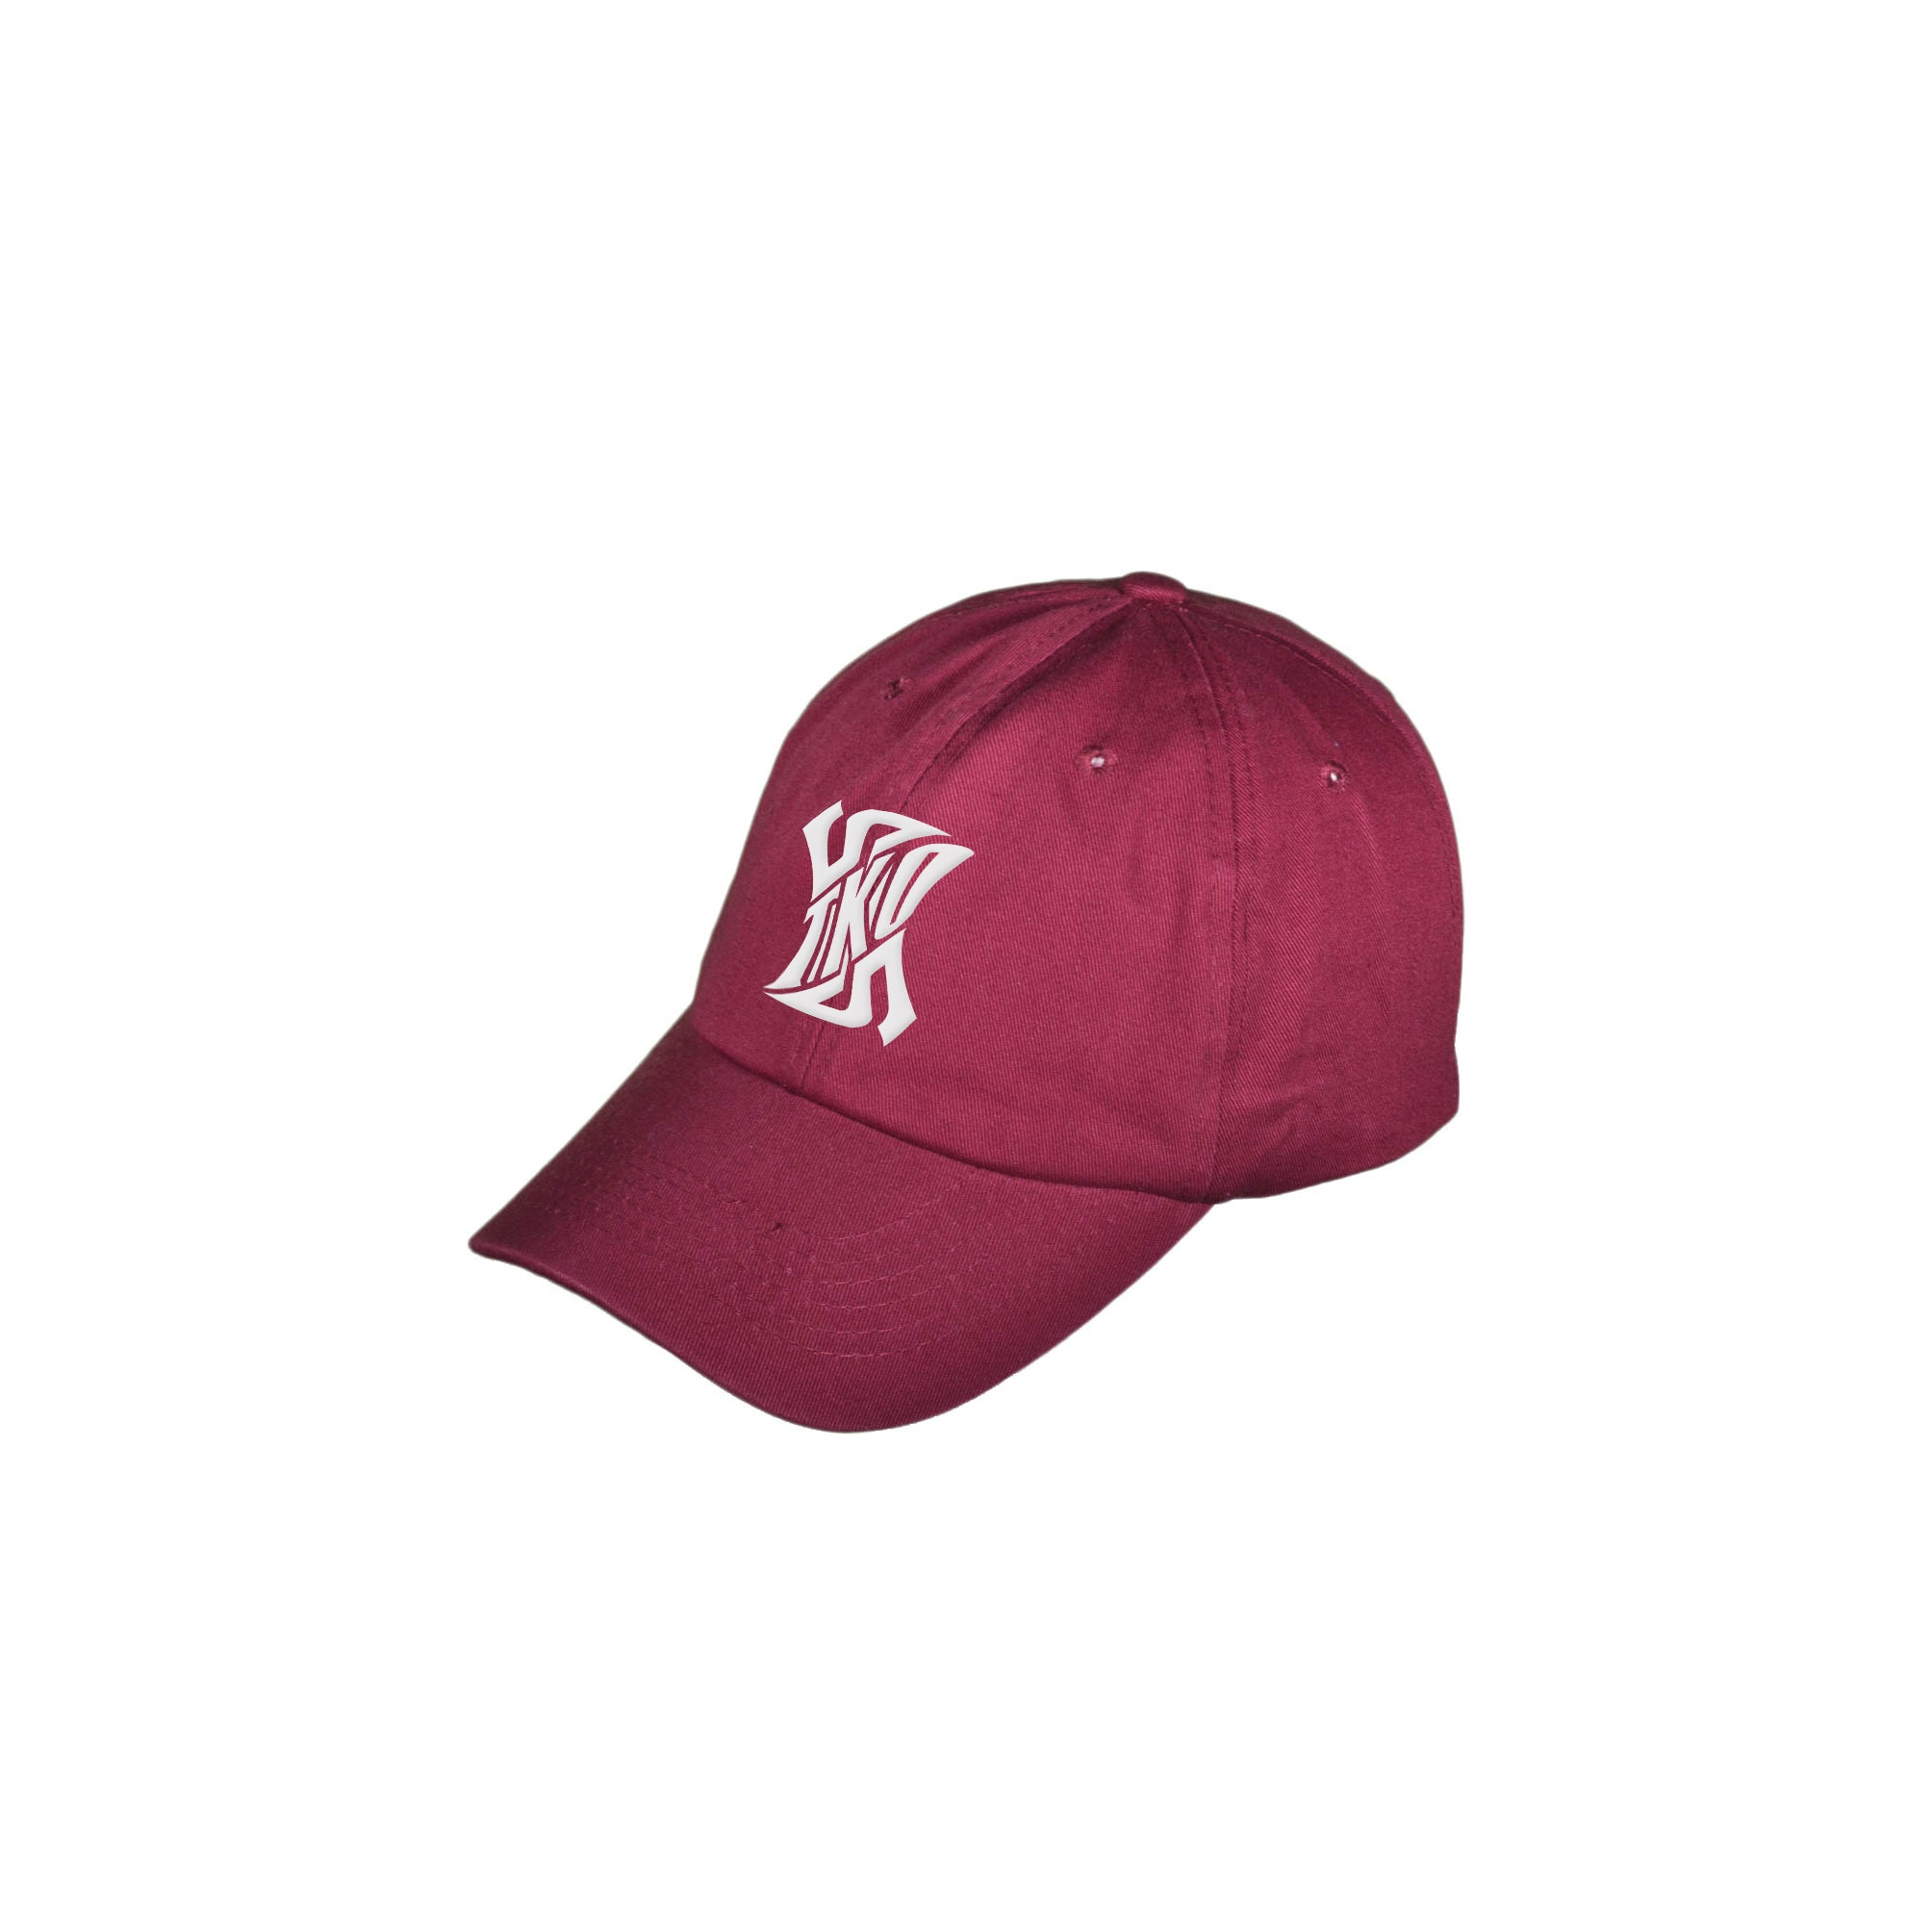 Maroon TKO Dad Hat